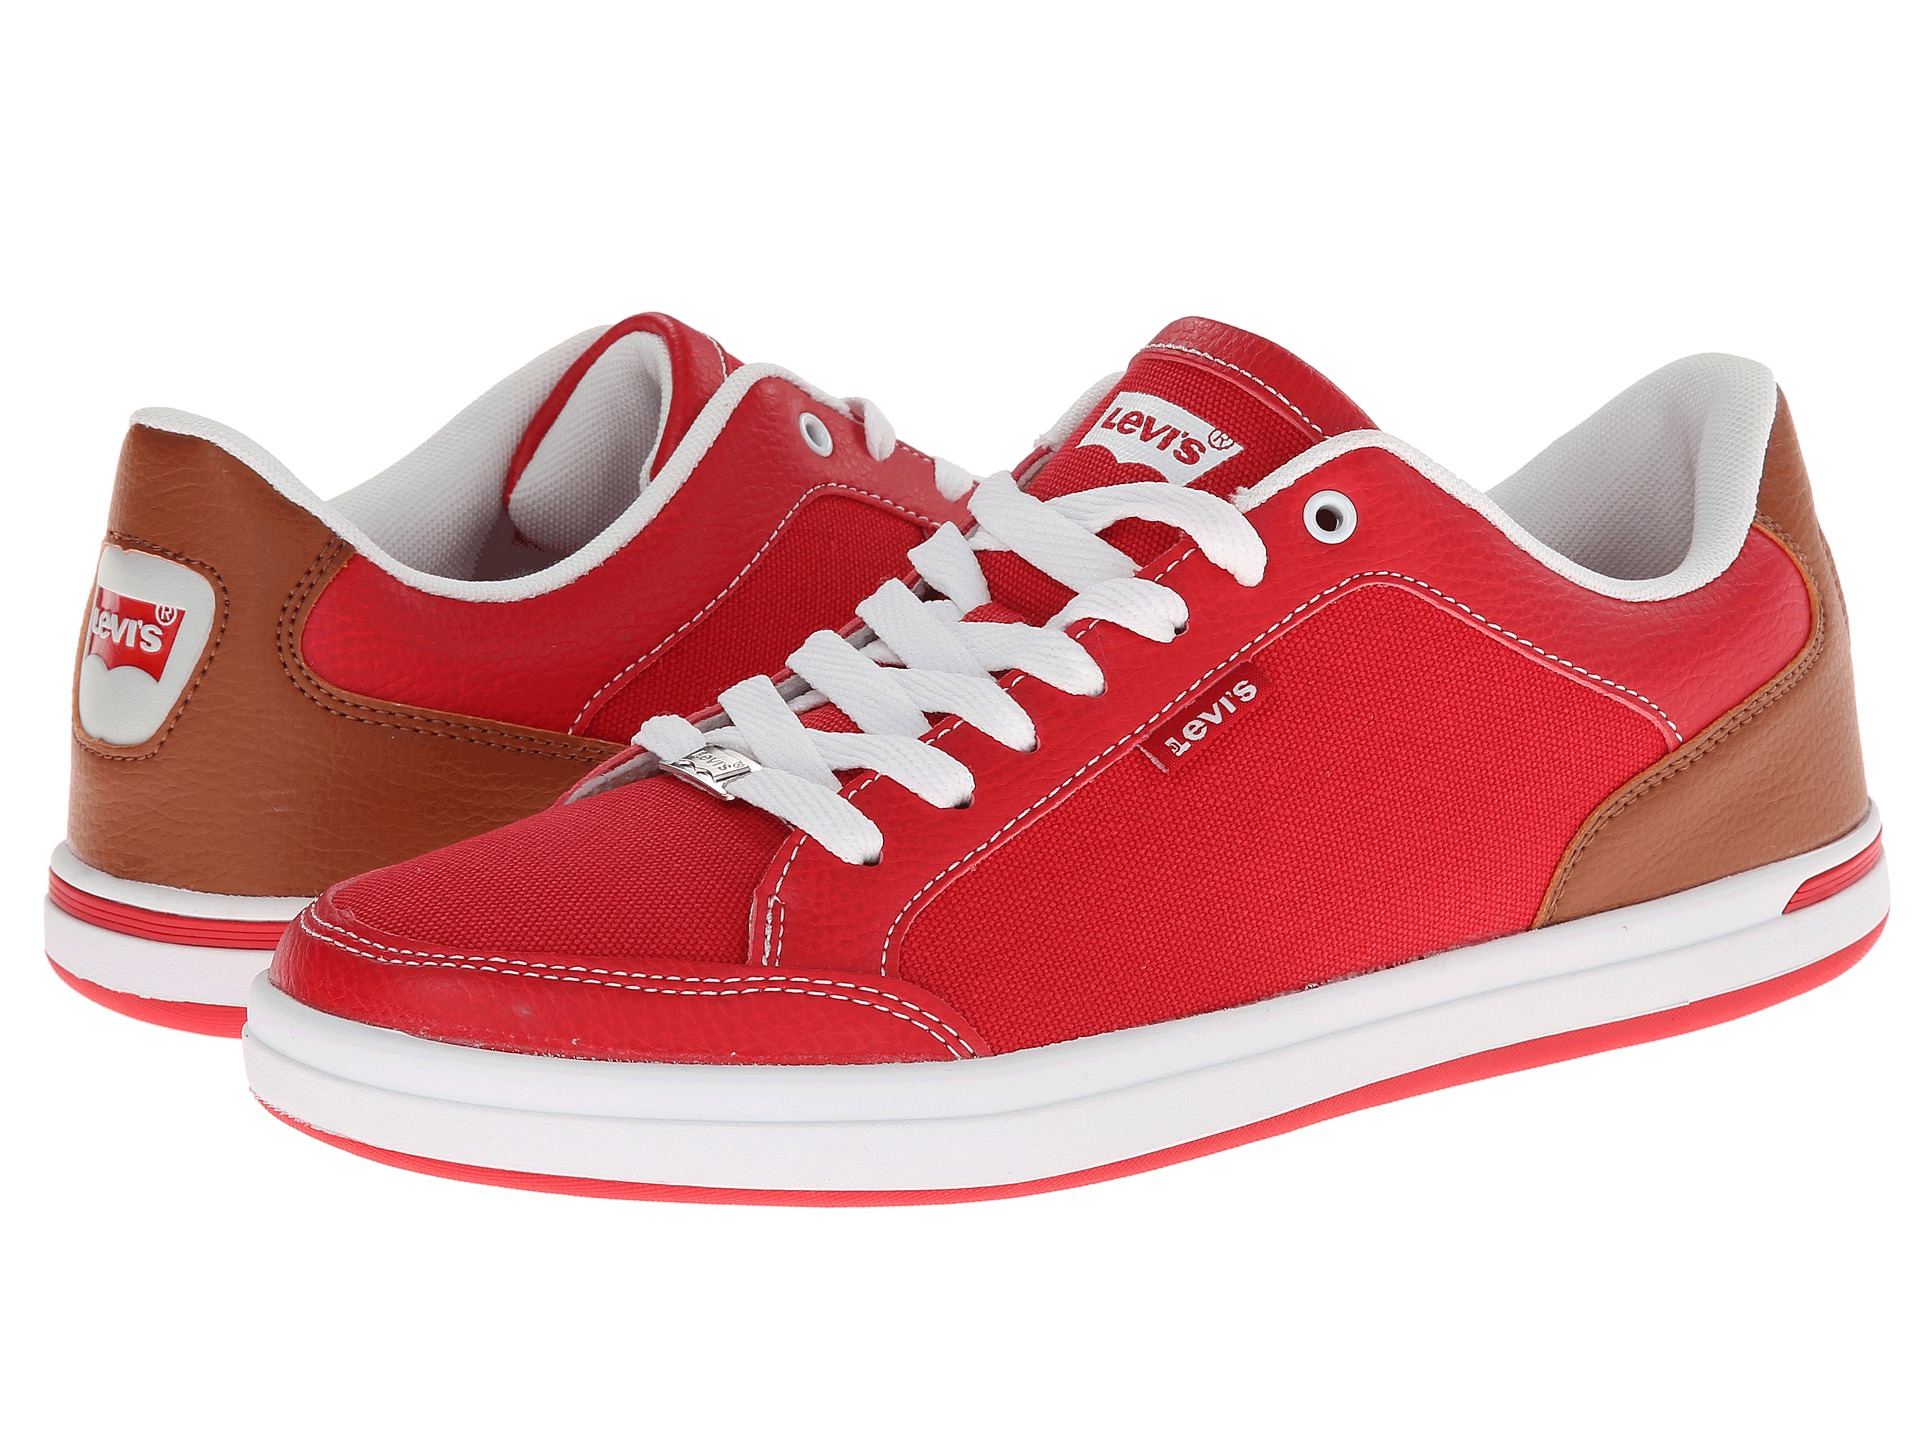 levi s 174 shoes aart casual canvas zappos free